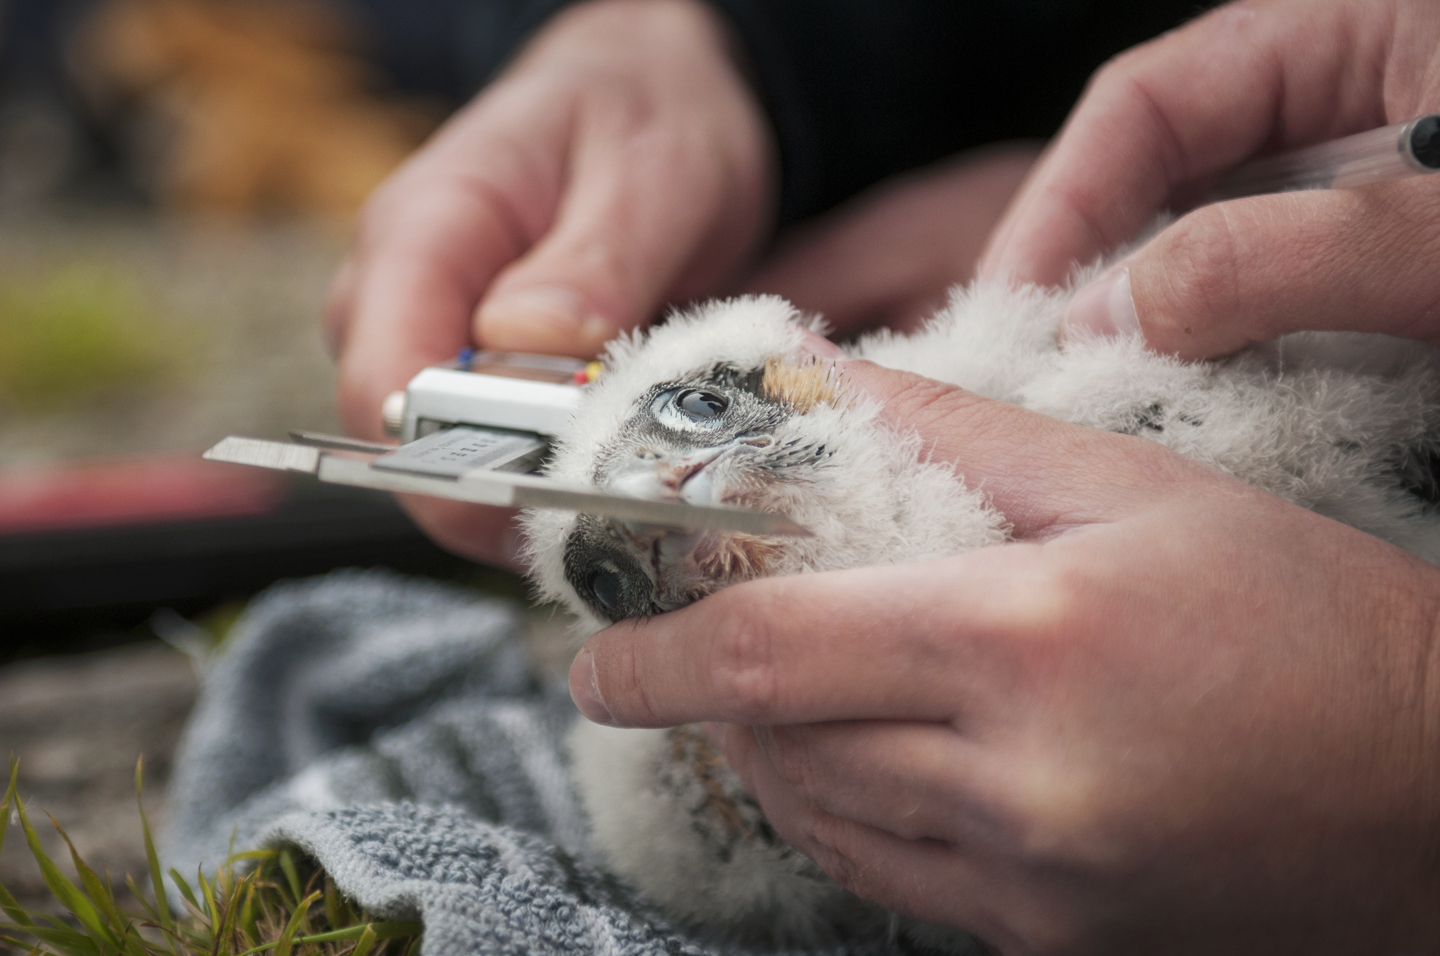 Urban and suburban peregrines can be much more easily monitored than their rural counterparts. The nestlings are ringed at around 3 weeks old